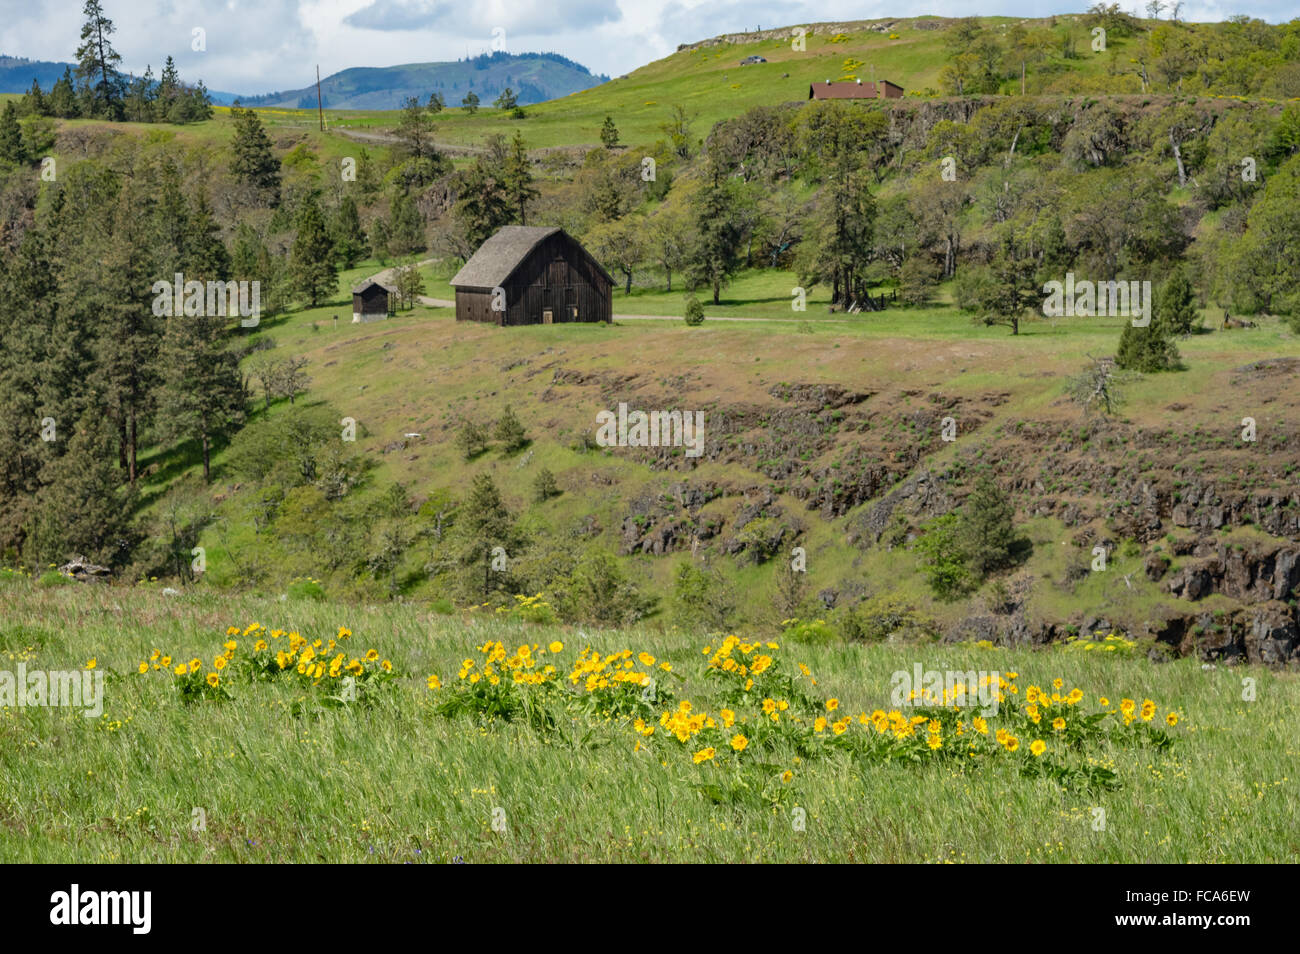 A small wooden barn on a farm and prairie in the Columbia Gorge. Columbia  Gorge